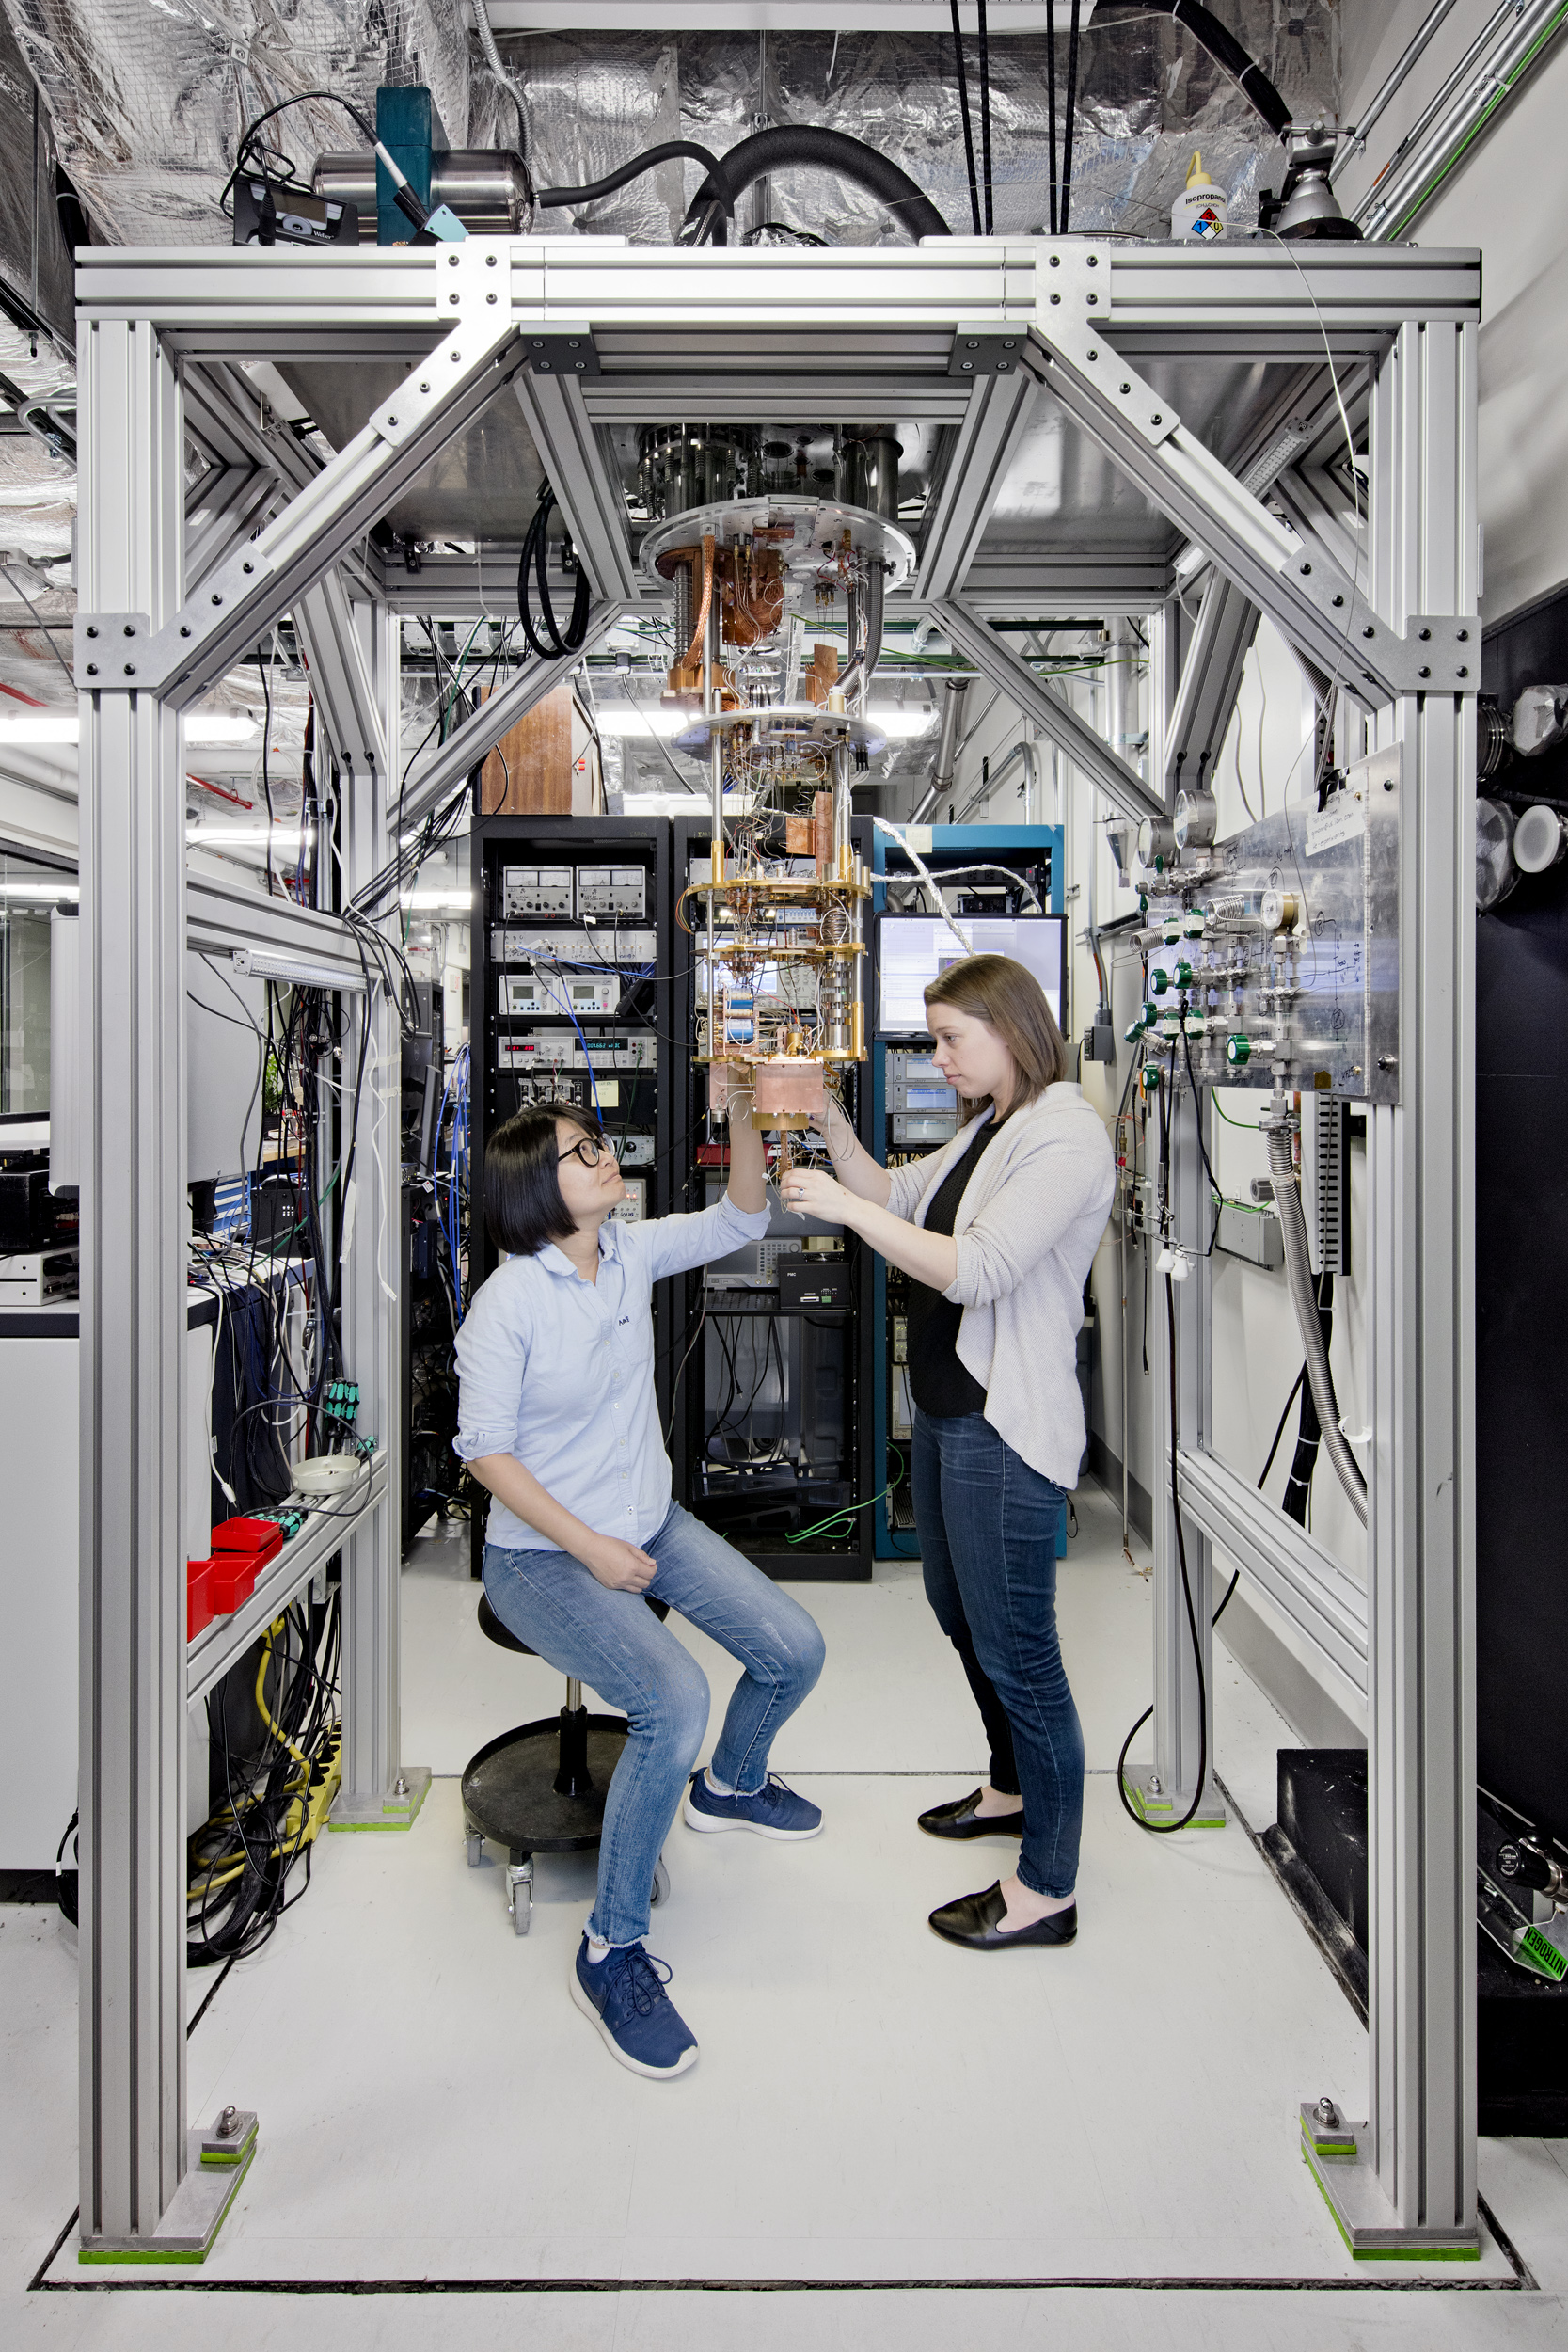 IBM Quantum Computing Scientists Hanhee Paik (left) and Sarah Sheldon (right) examine hardware inside an open dilution fridge at the IBM Q Lab at IBM's T. J. Watson Research Center in Yorktown, NY.